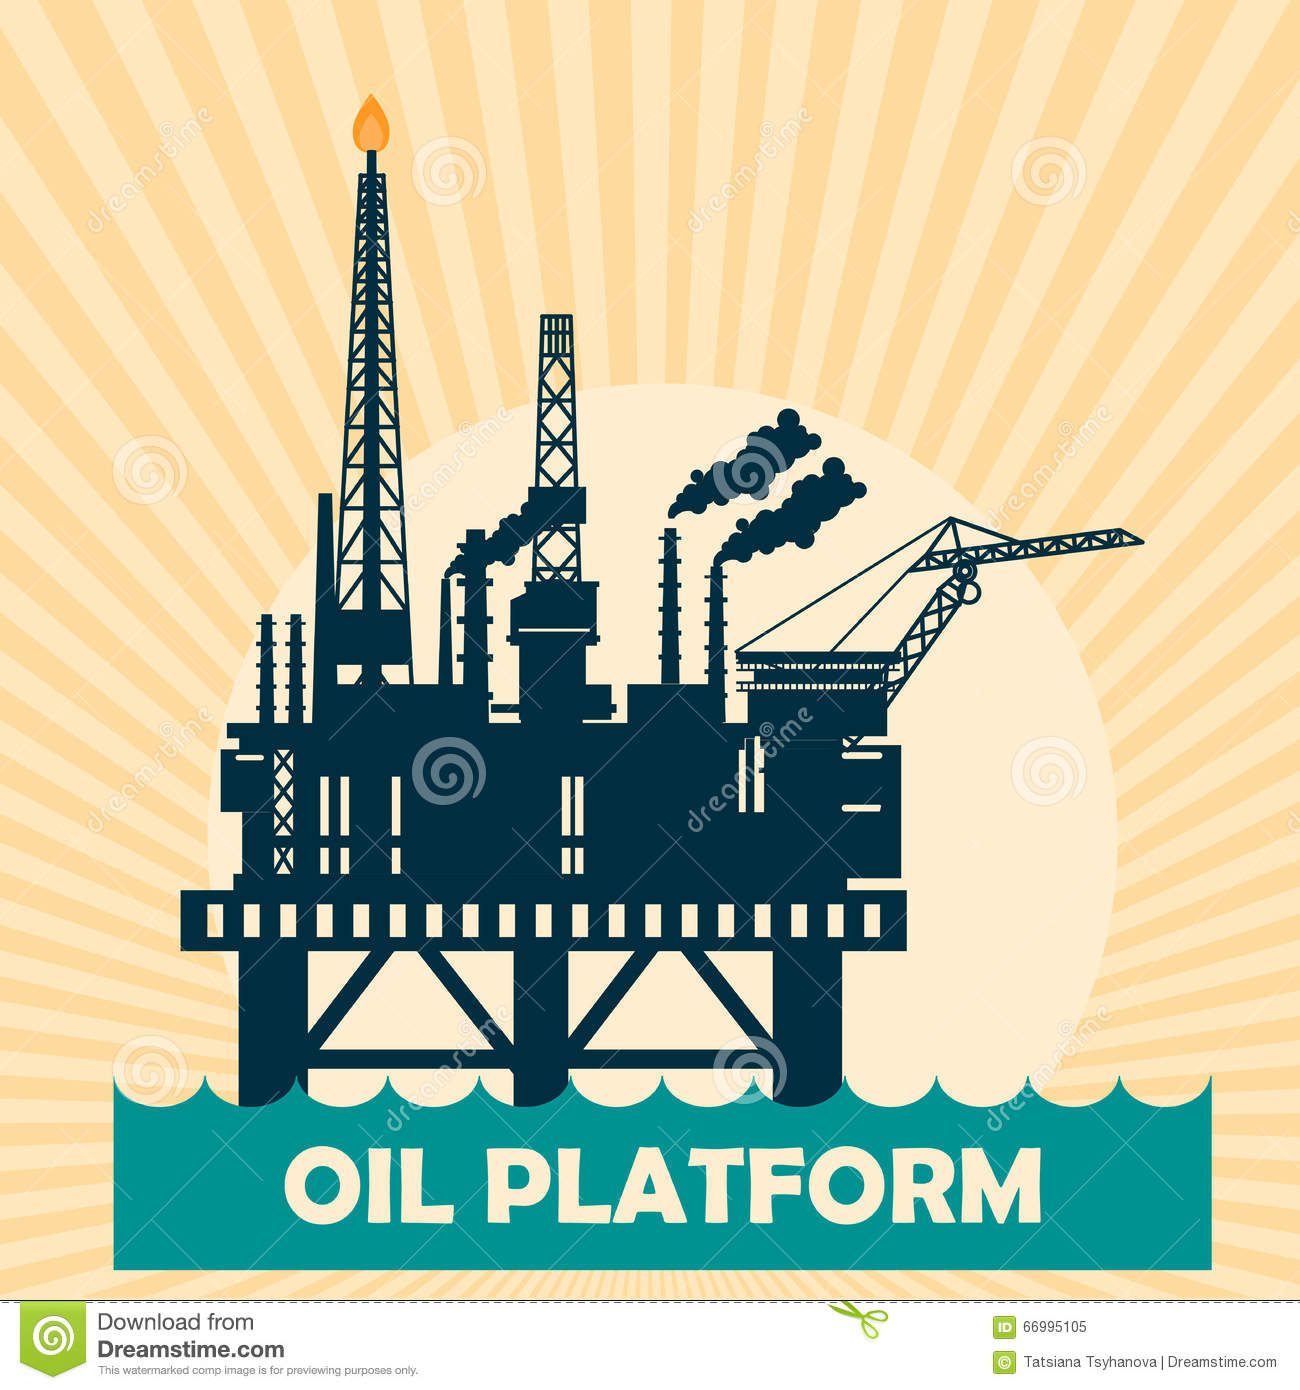 Offshore oil platform design concept set with petroleum. Helipad, cranes, derrick, hull column, lifeboat